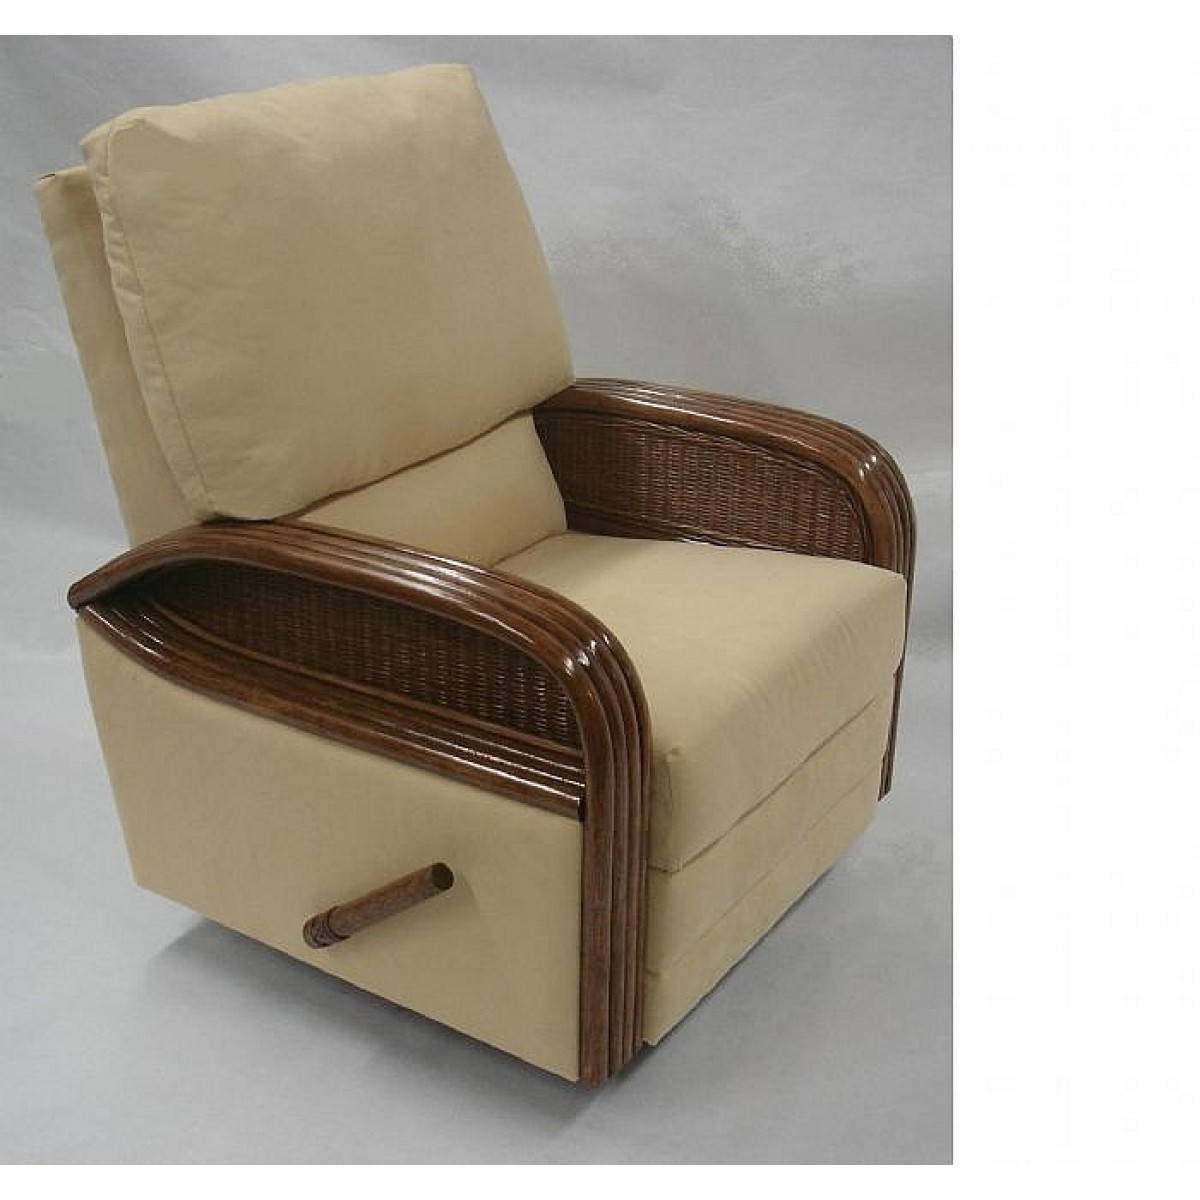 Swivel Rocker Chair Cushions | Rattan Swivel Chair Cushion | Rattan Swivel Rocker